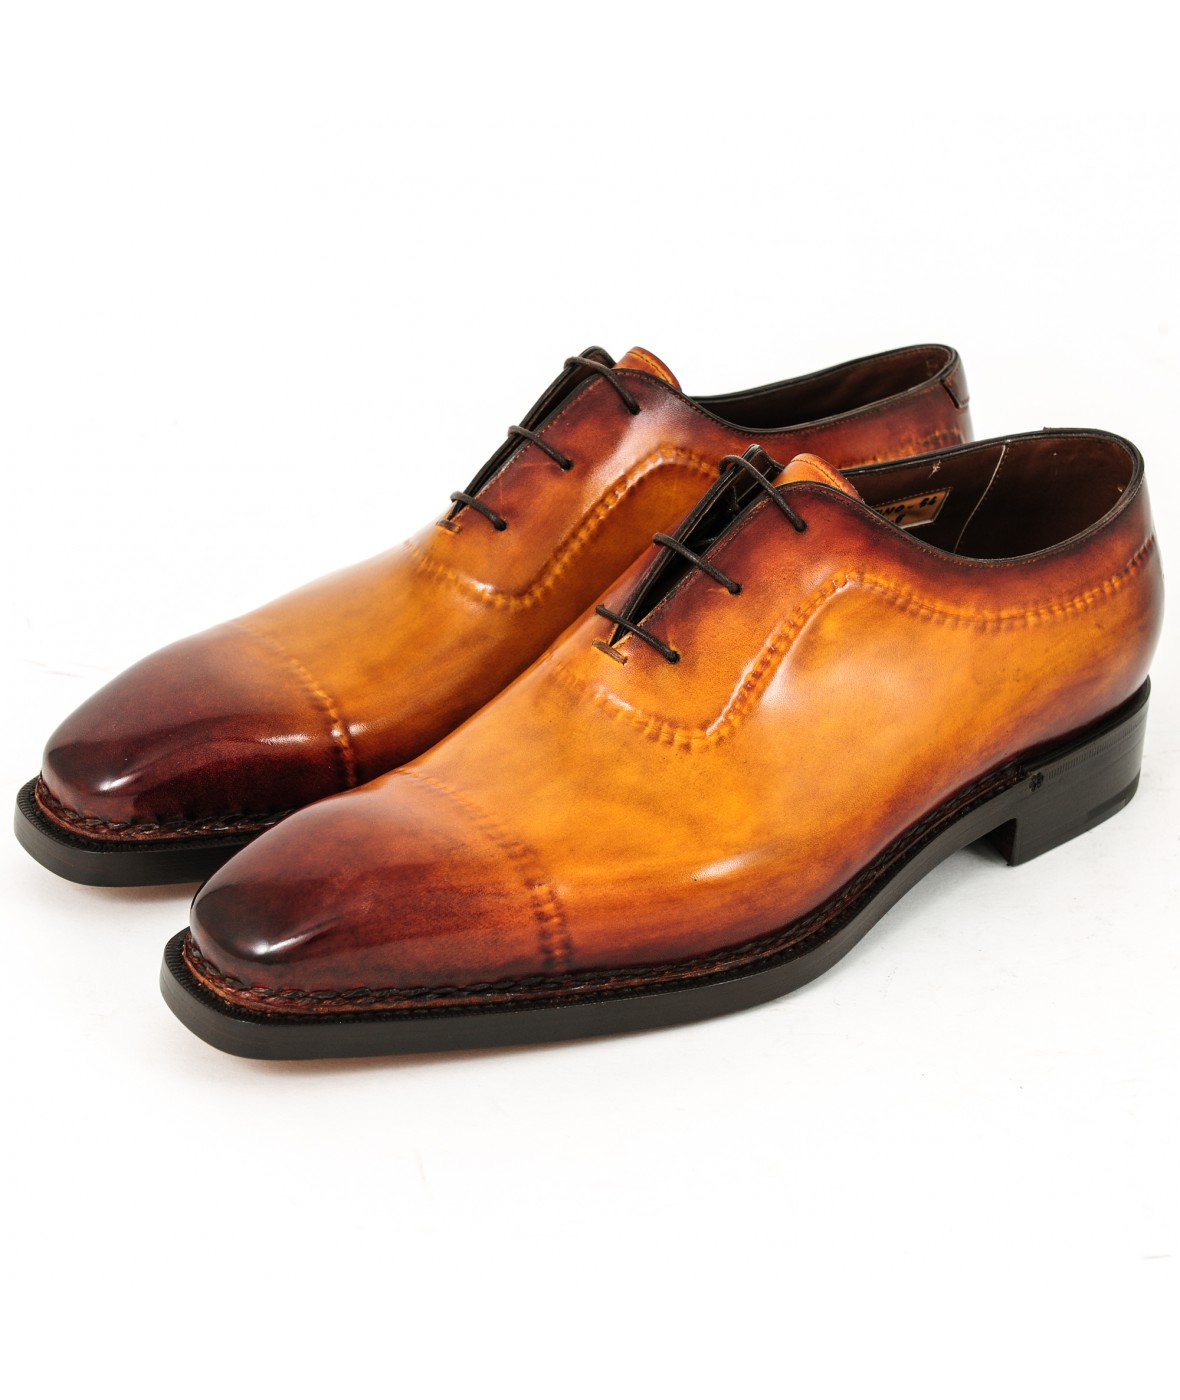 Santoni Special Limited 2